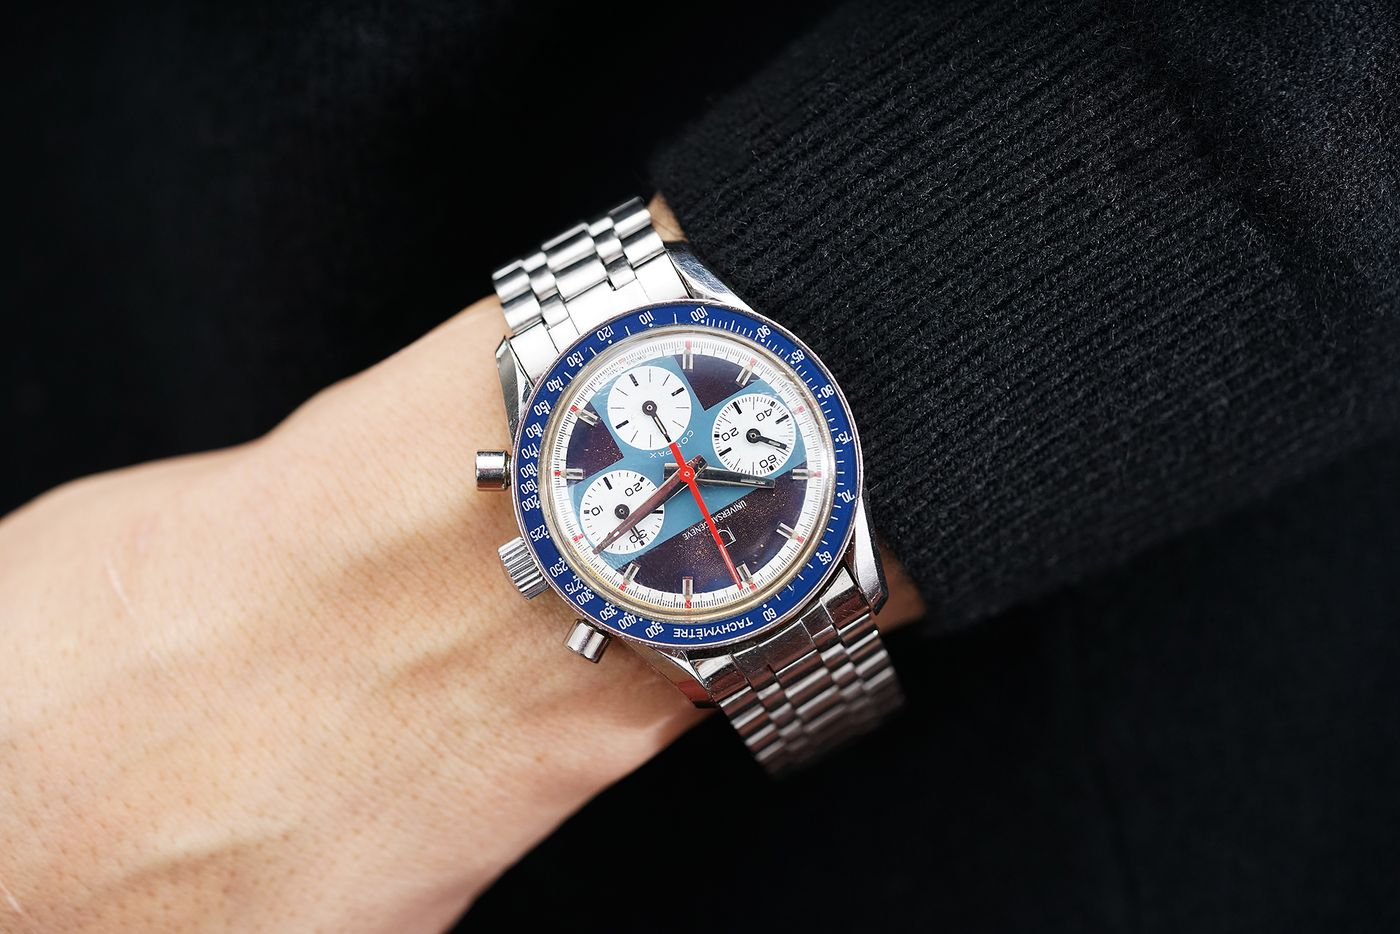 We asked our New York specialists to highlight some of the watches from GAME CHANGERS ahead of the auction on 10 December. Here are the six they picked.